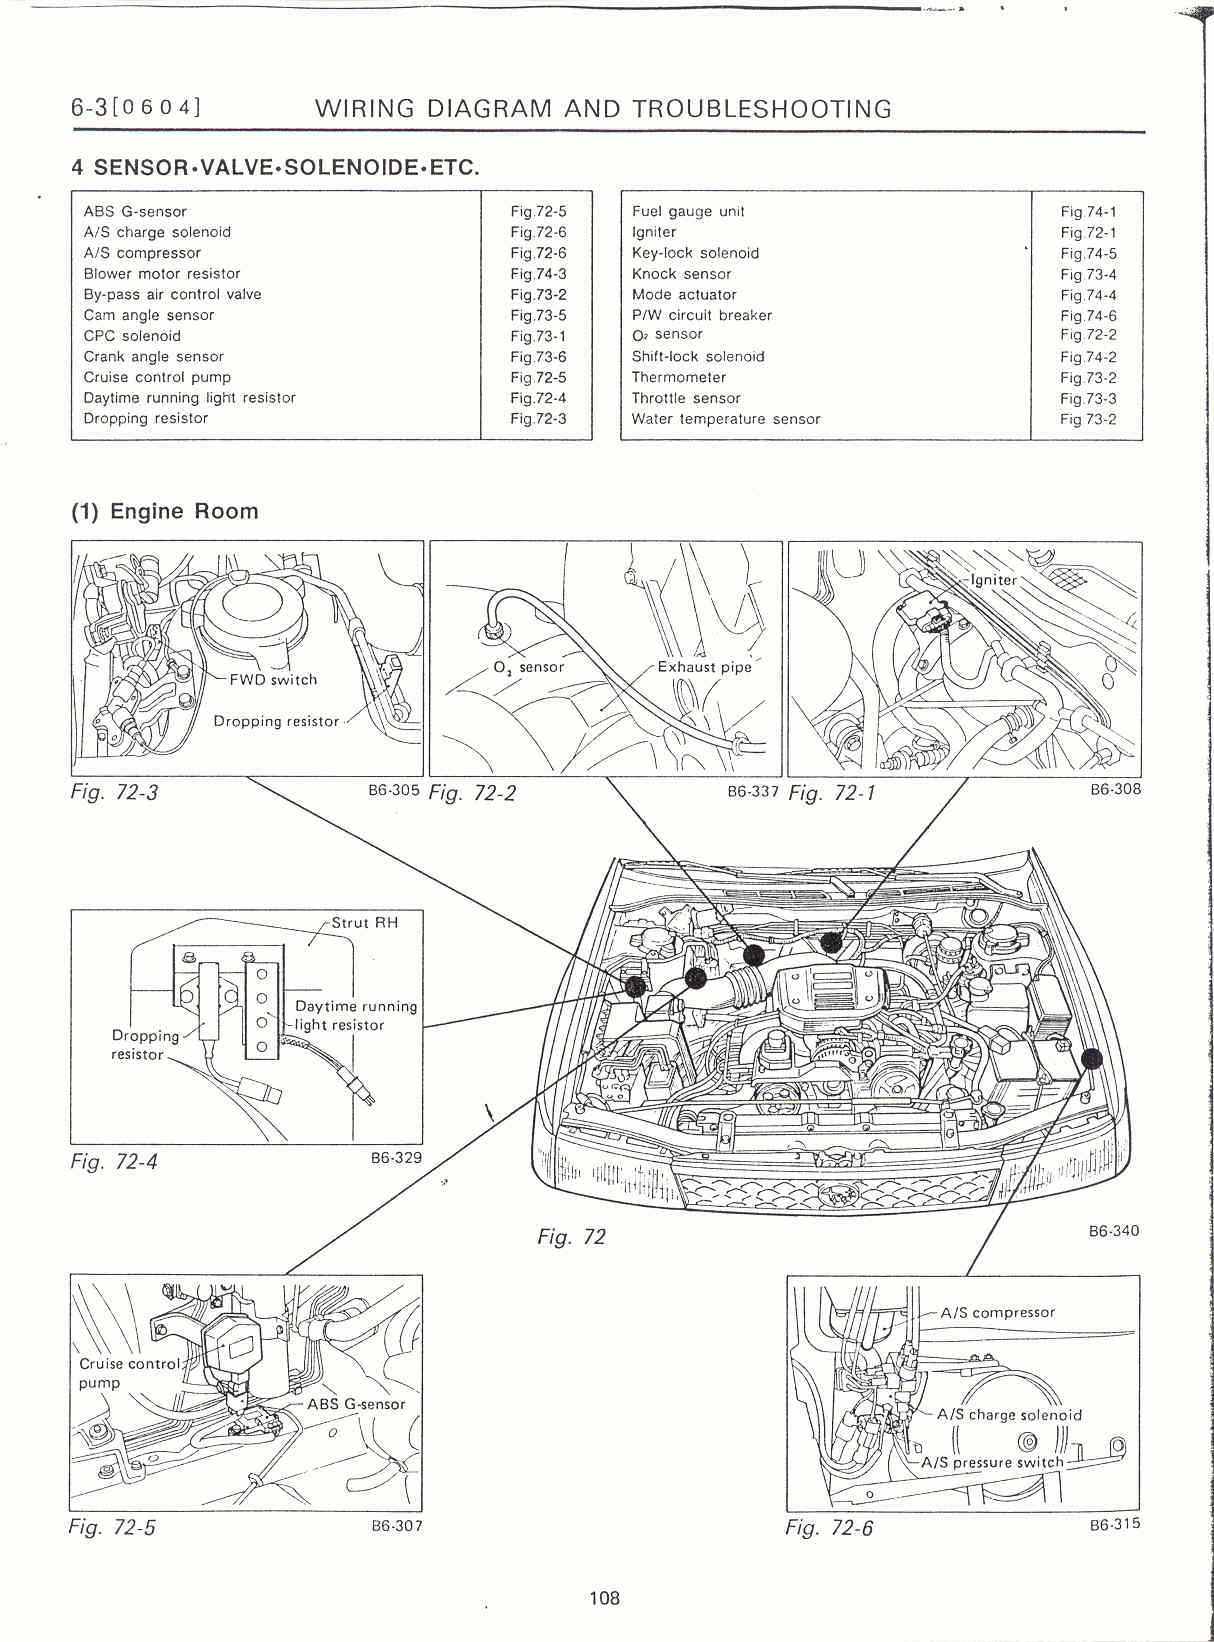 surrealmirage subaru legacy swap electrical info notes rh surrealmirage com 2015 Subaru Impreza 2013 Subaru Impreza